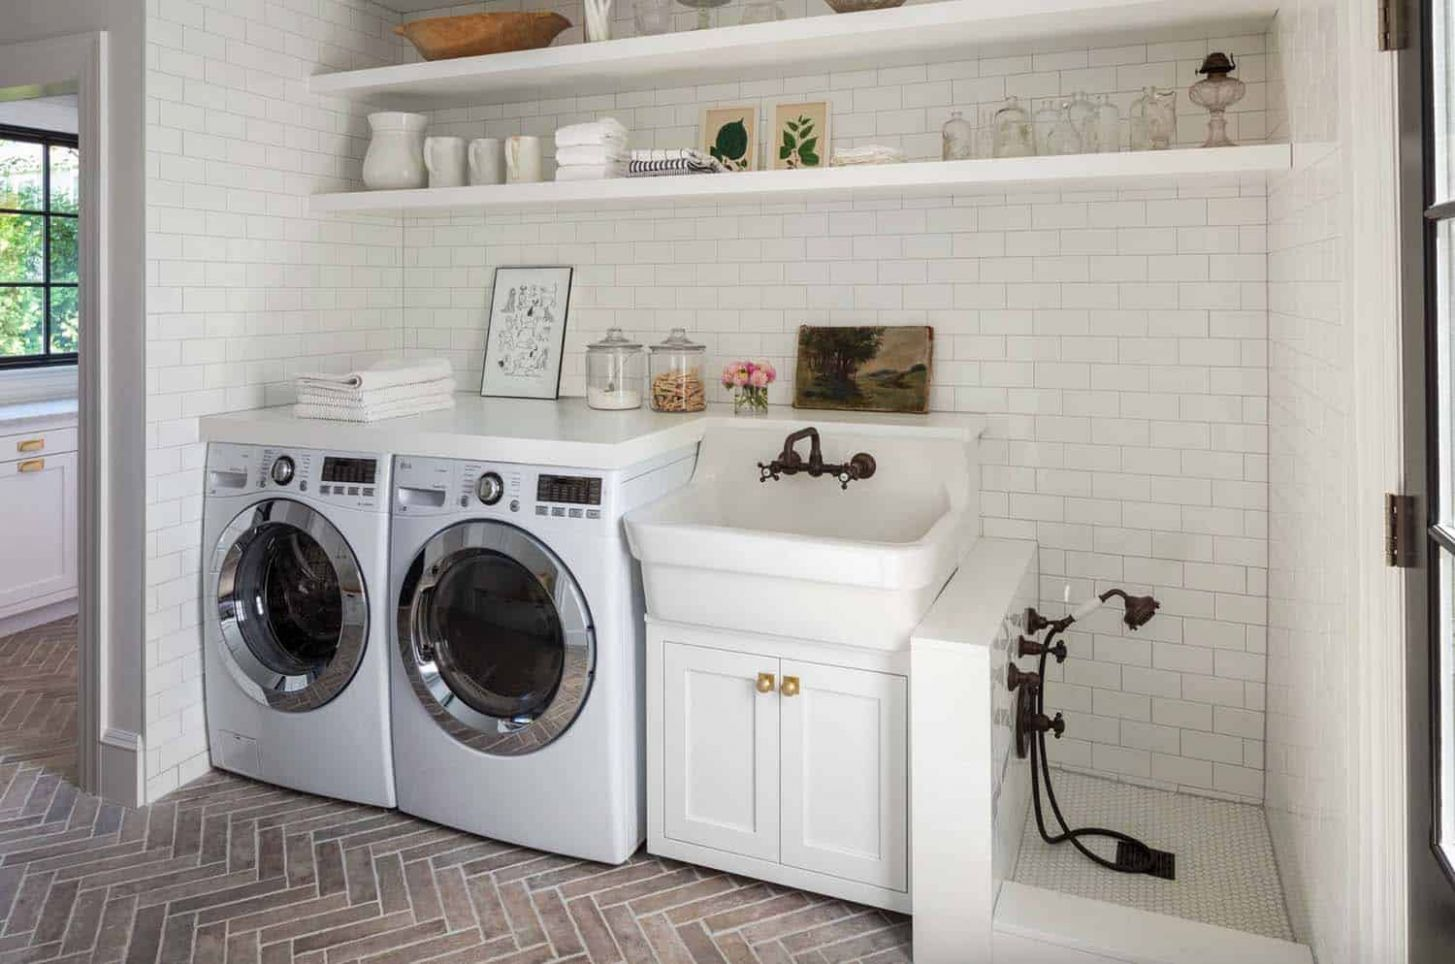 11 Functional And Stylish Laundry Room Design Ideas To Inspire - laundry room tub ideas